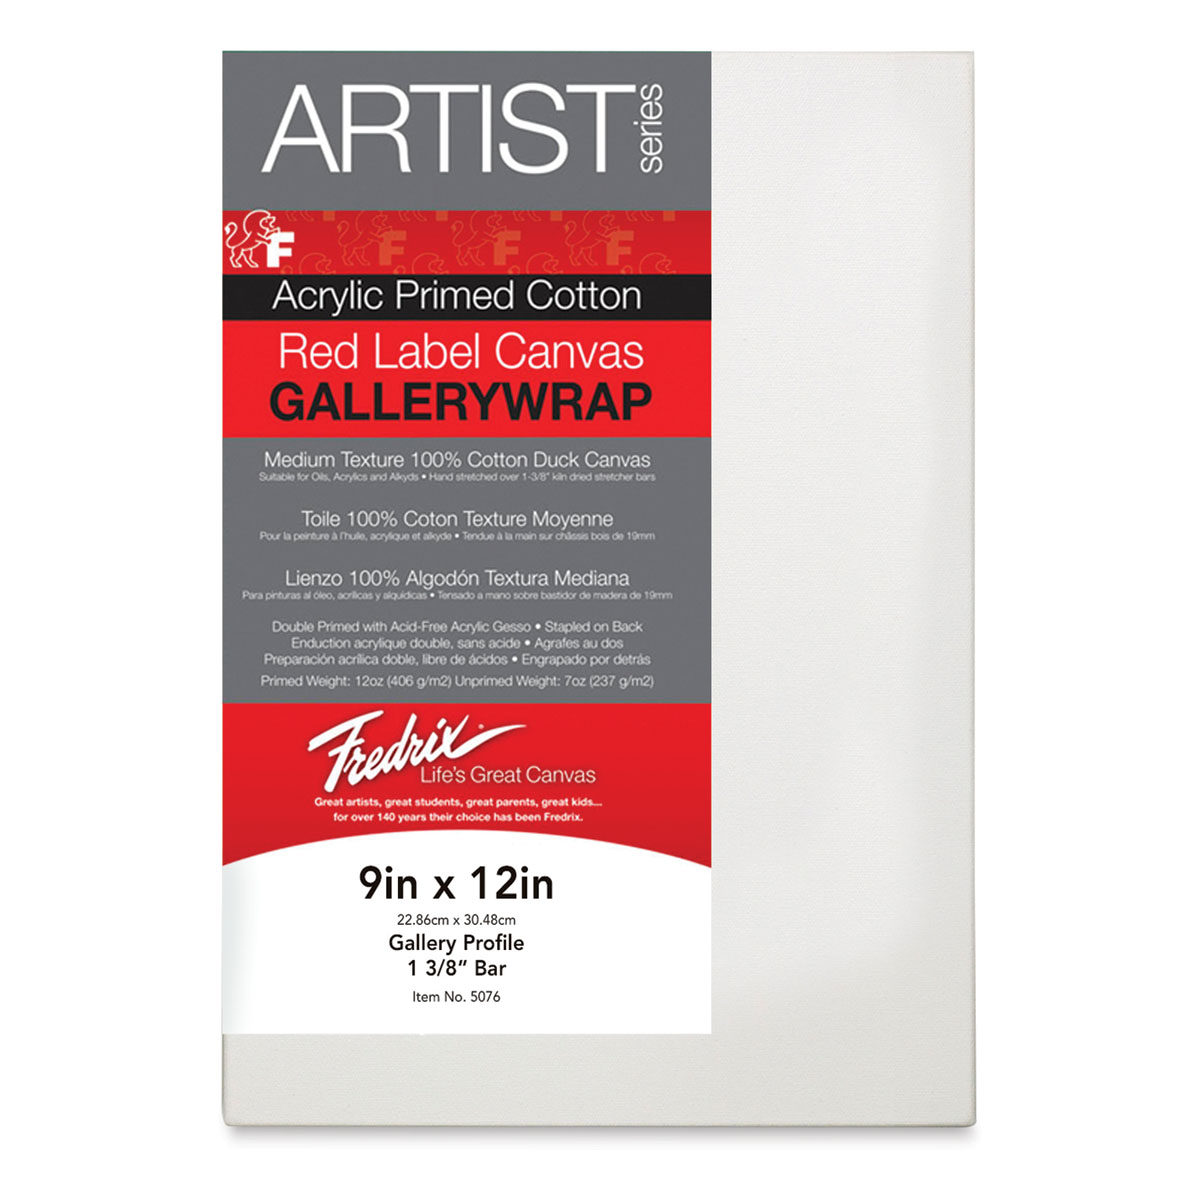 18 x 24 in Fredrix Gallerywrap Stretched Canvas